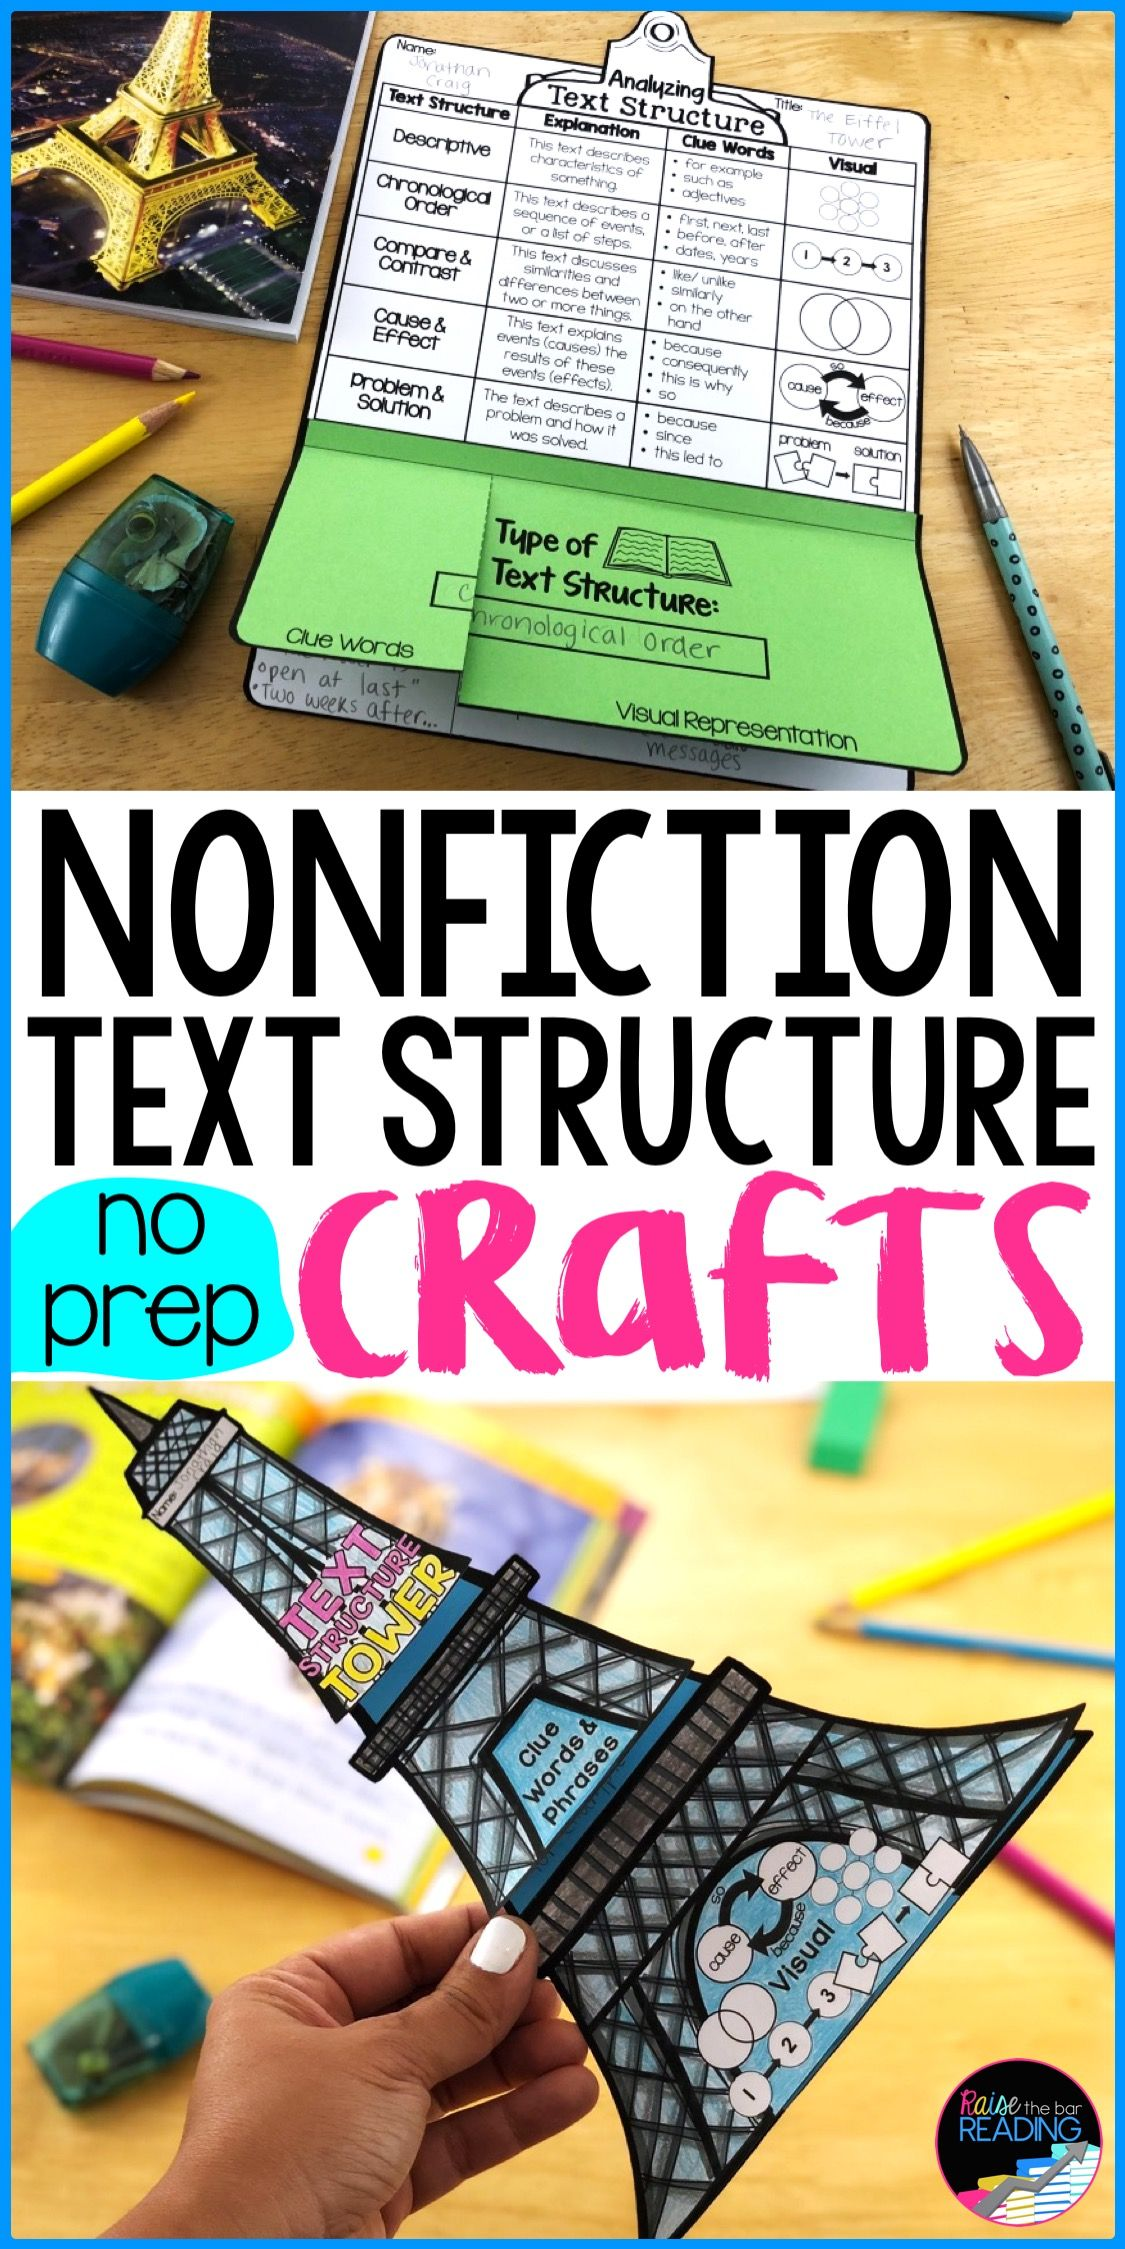 small resolution of Nonfiction Reading Crafts Set 5: Nonfiction Text Structure Activities    Nonfiction text structure